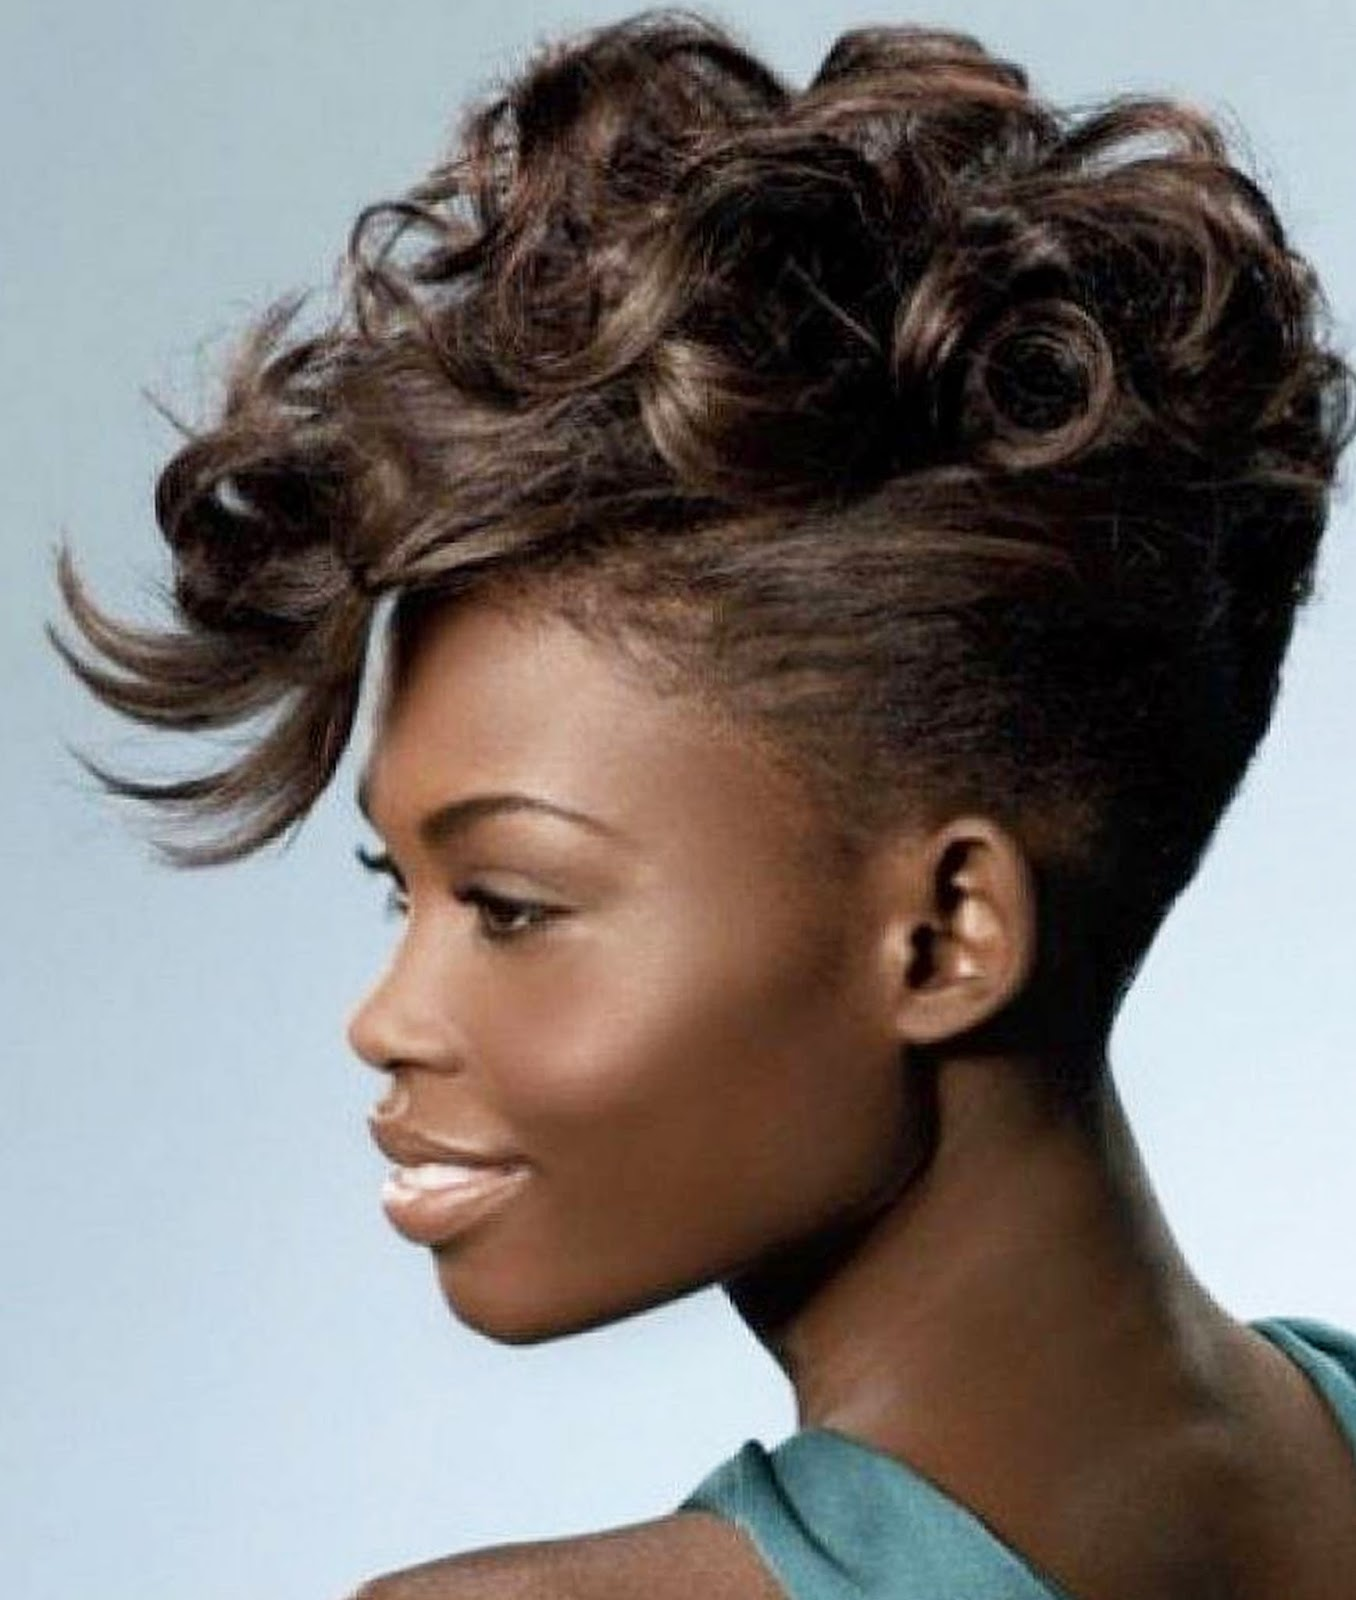 black haircut styles 5 stunning haircuts american cruckers 2547